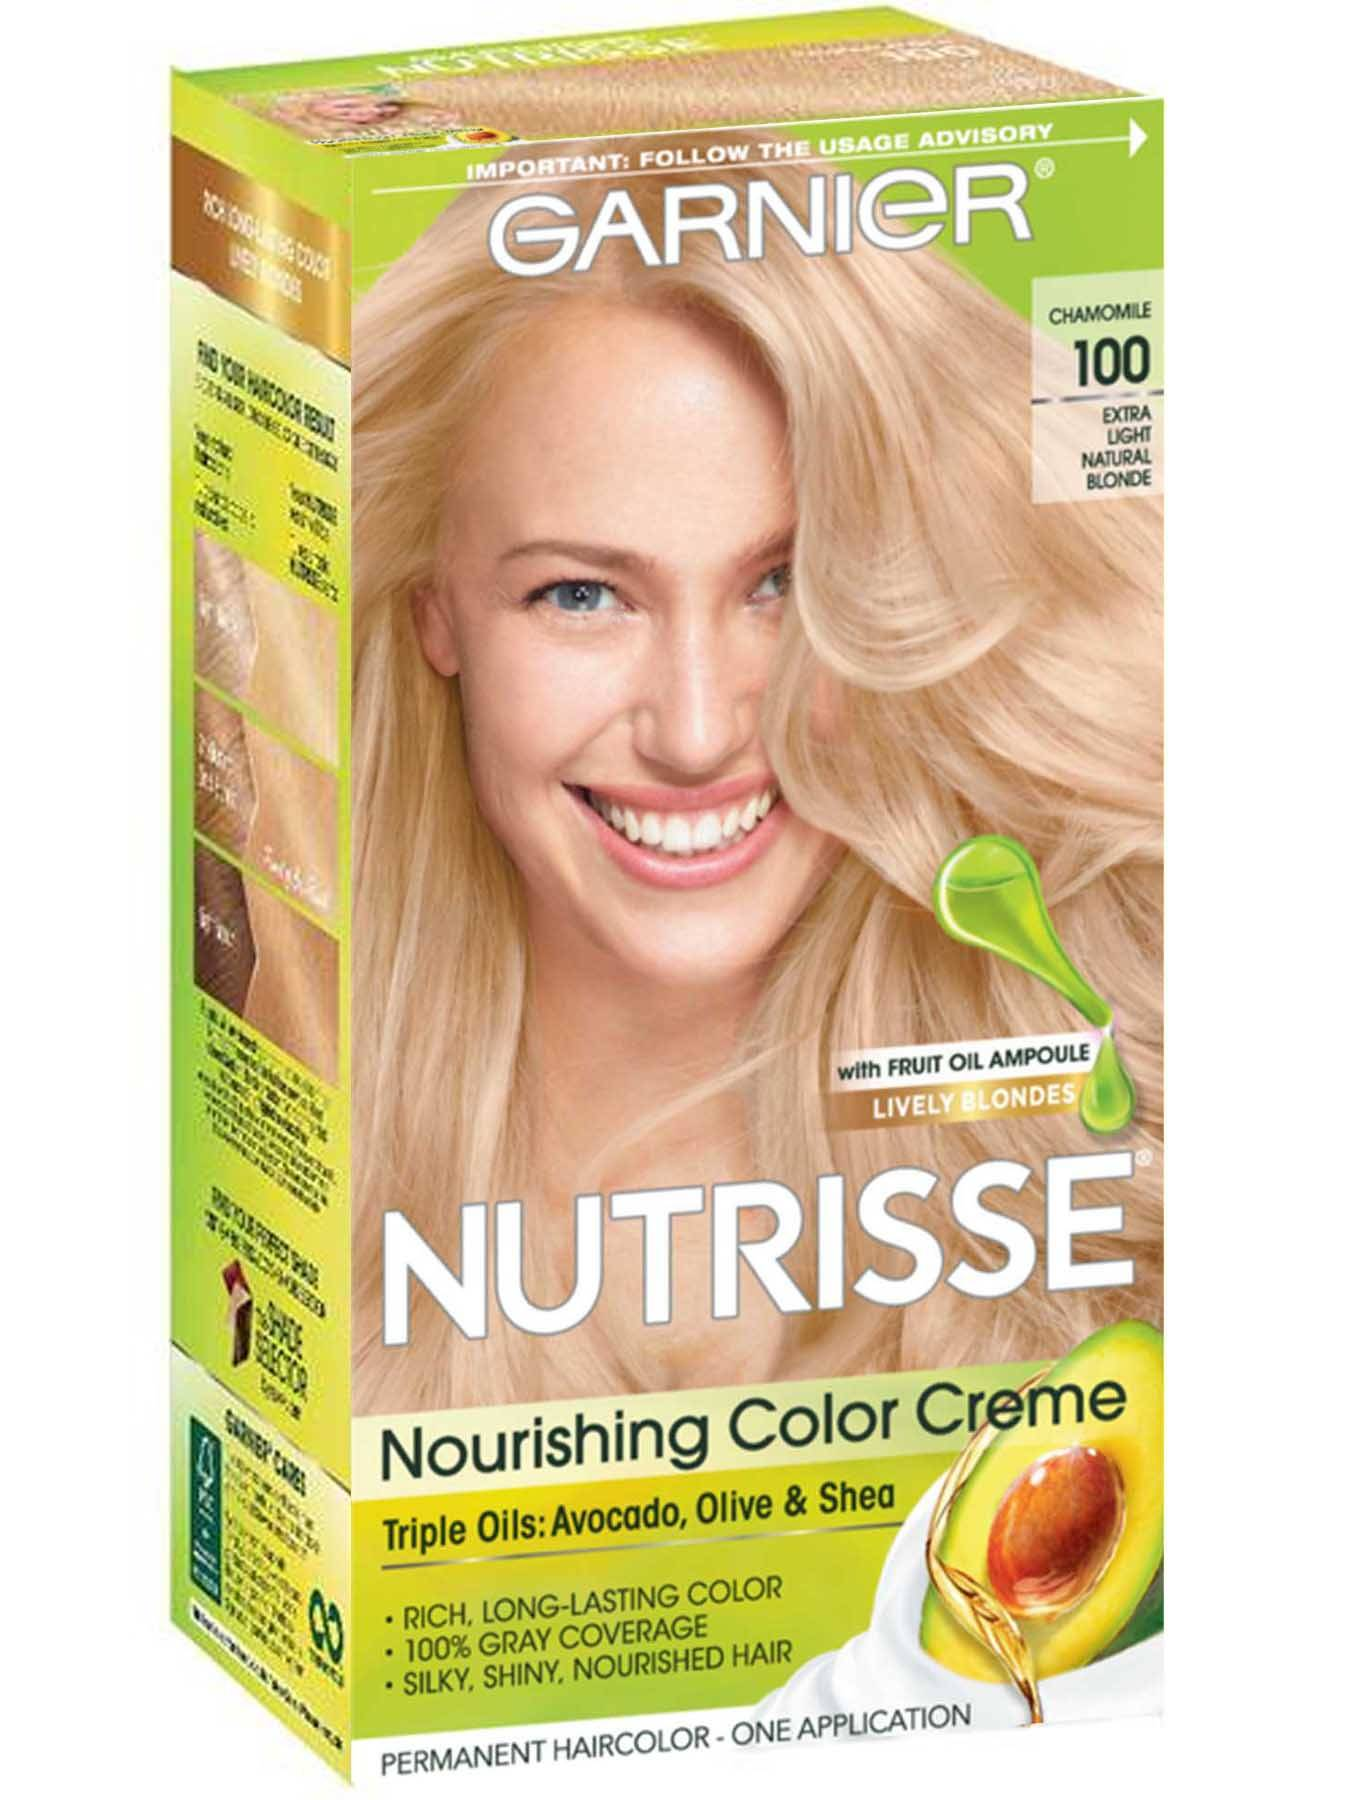 Nutrisse Nourishing Color Creme - Extra-Light Natural Blonde - Garnier